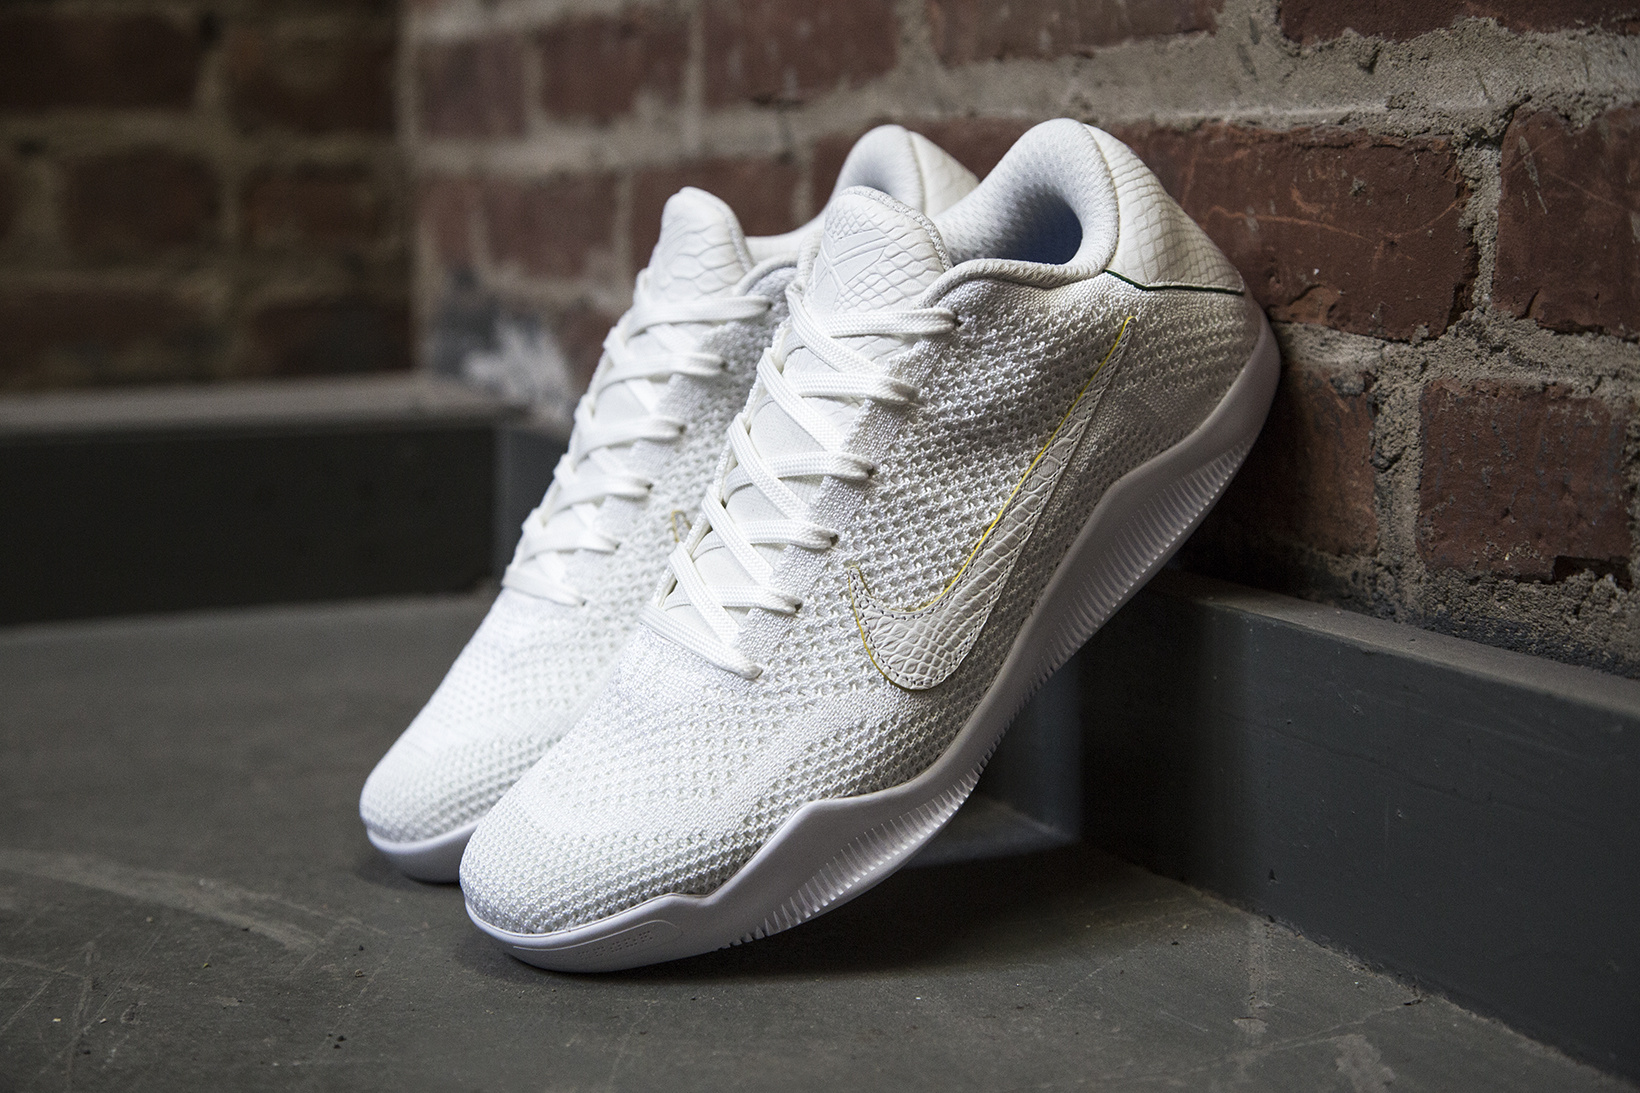 nikelab-kobe-xi-elite-low-brazil-1